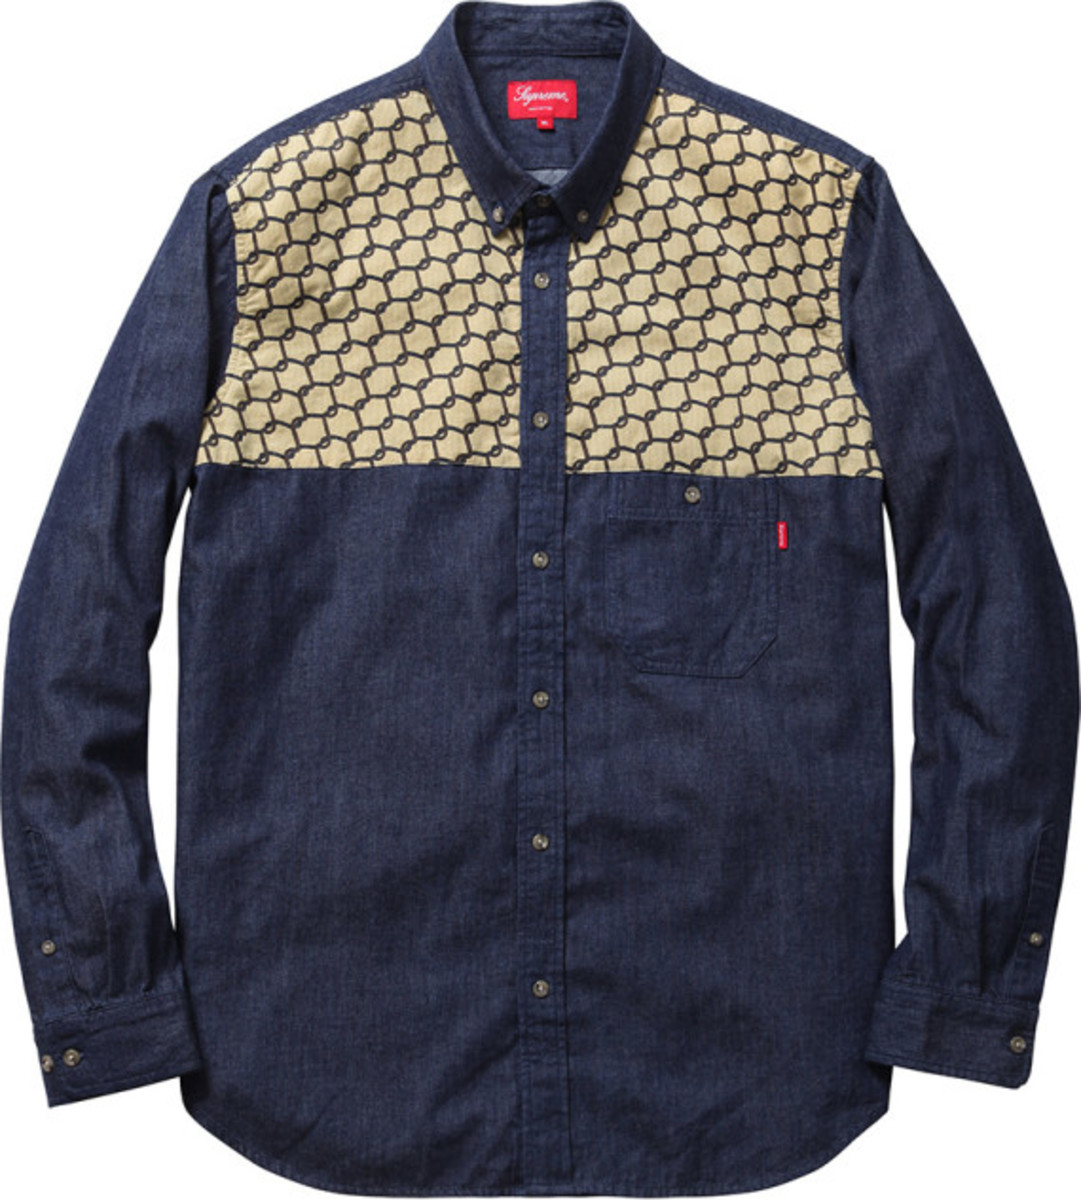 supreme-fall-winter-2013-apparel-collection-070